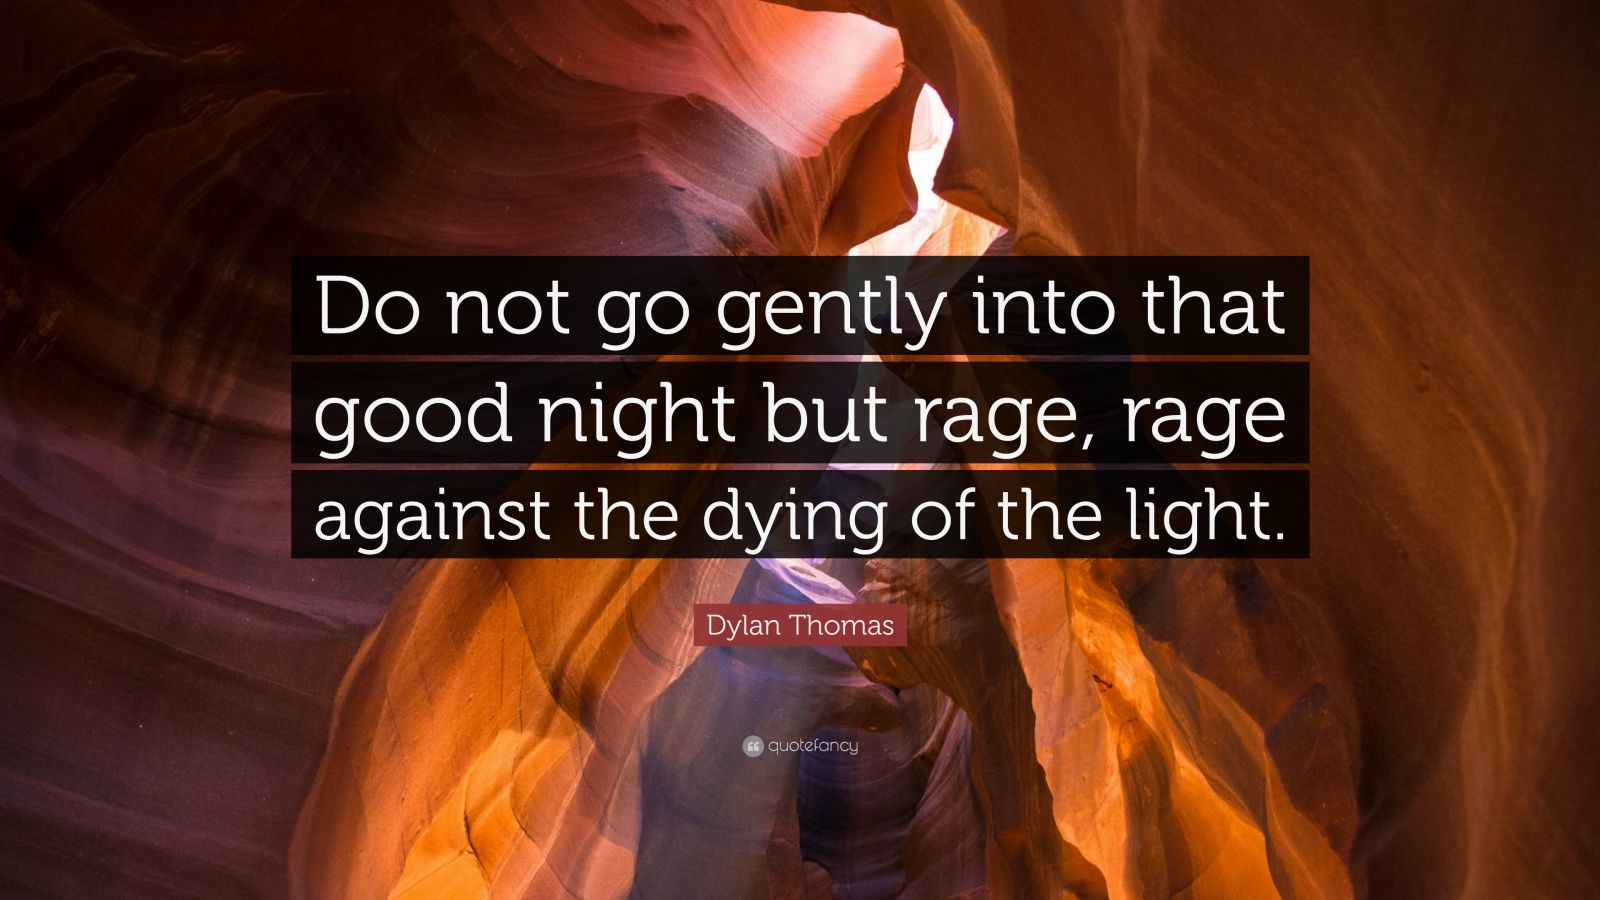 Meaning Rage Against Dying Light